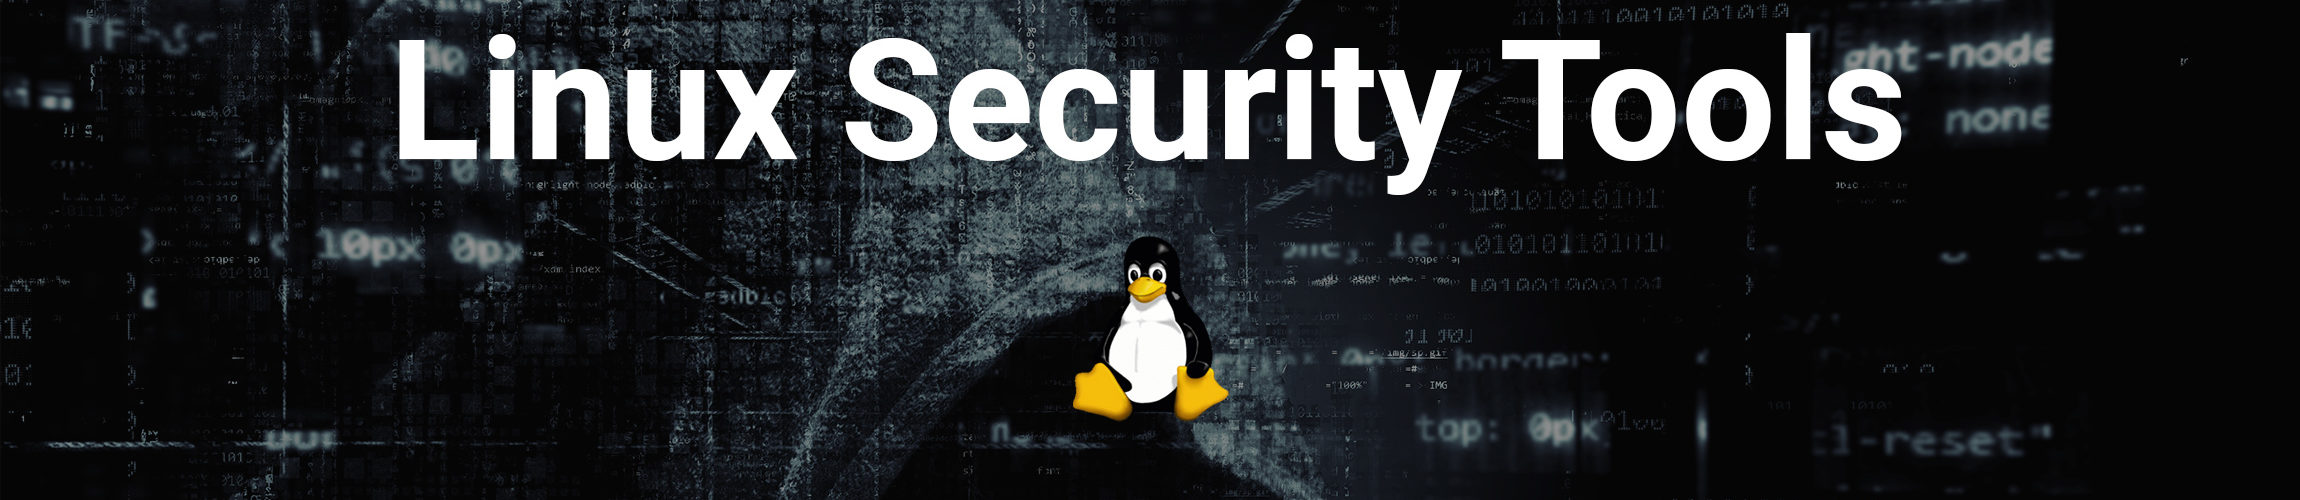 Linux Security Tools